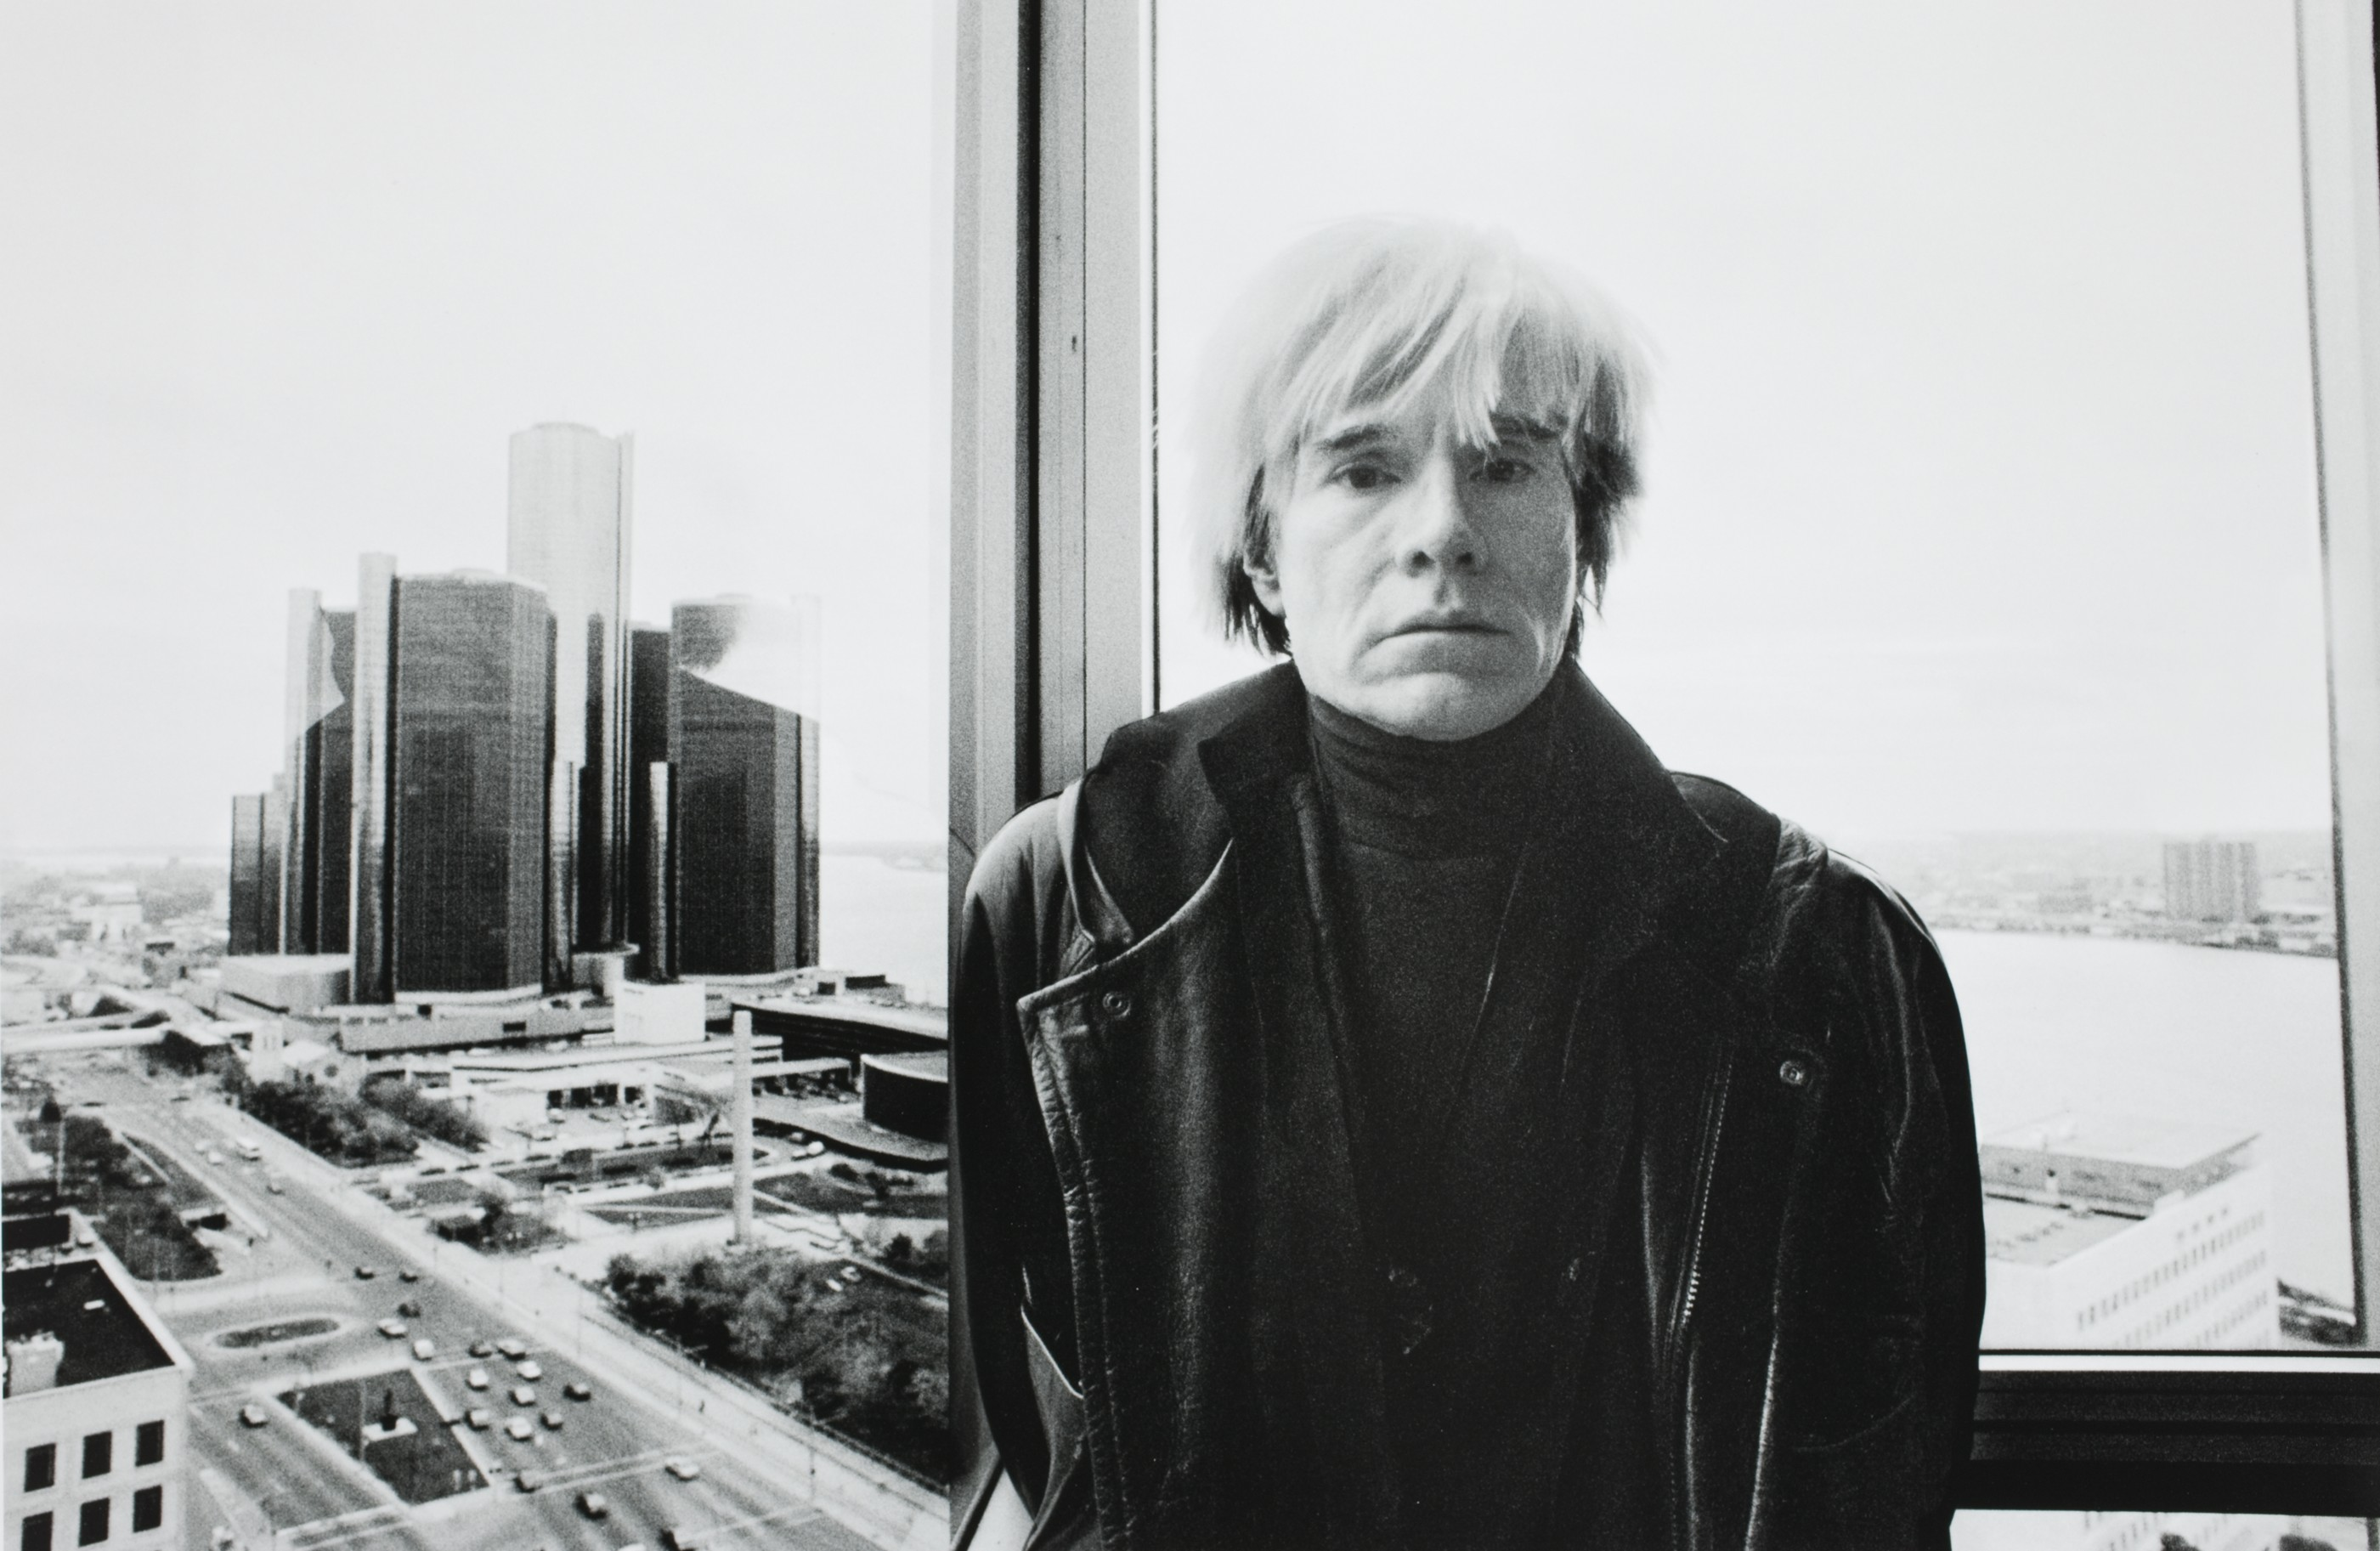 andy-warhol-pop-artist-pop-art